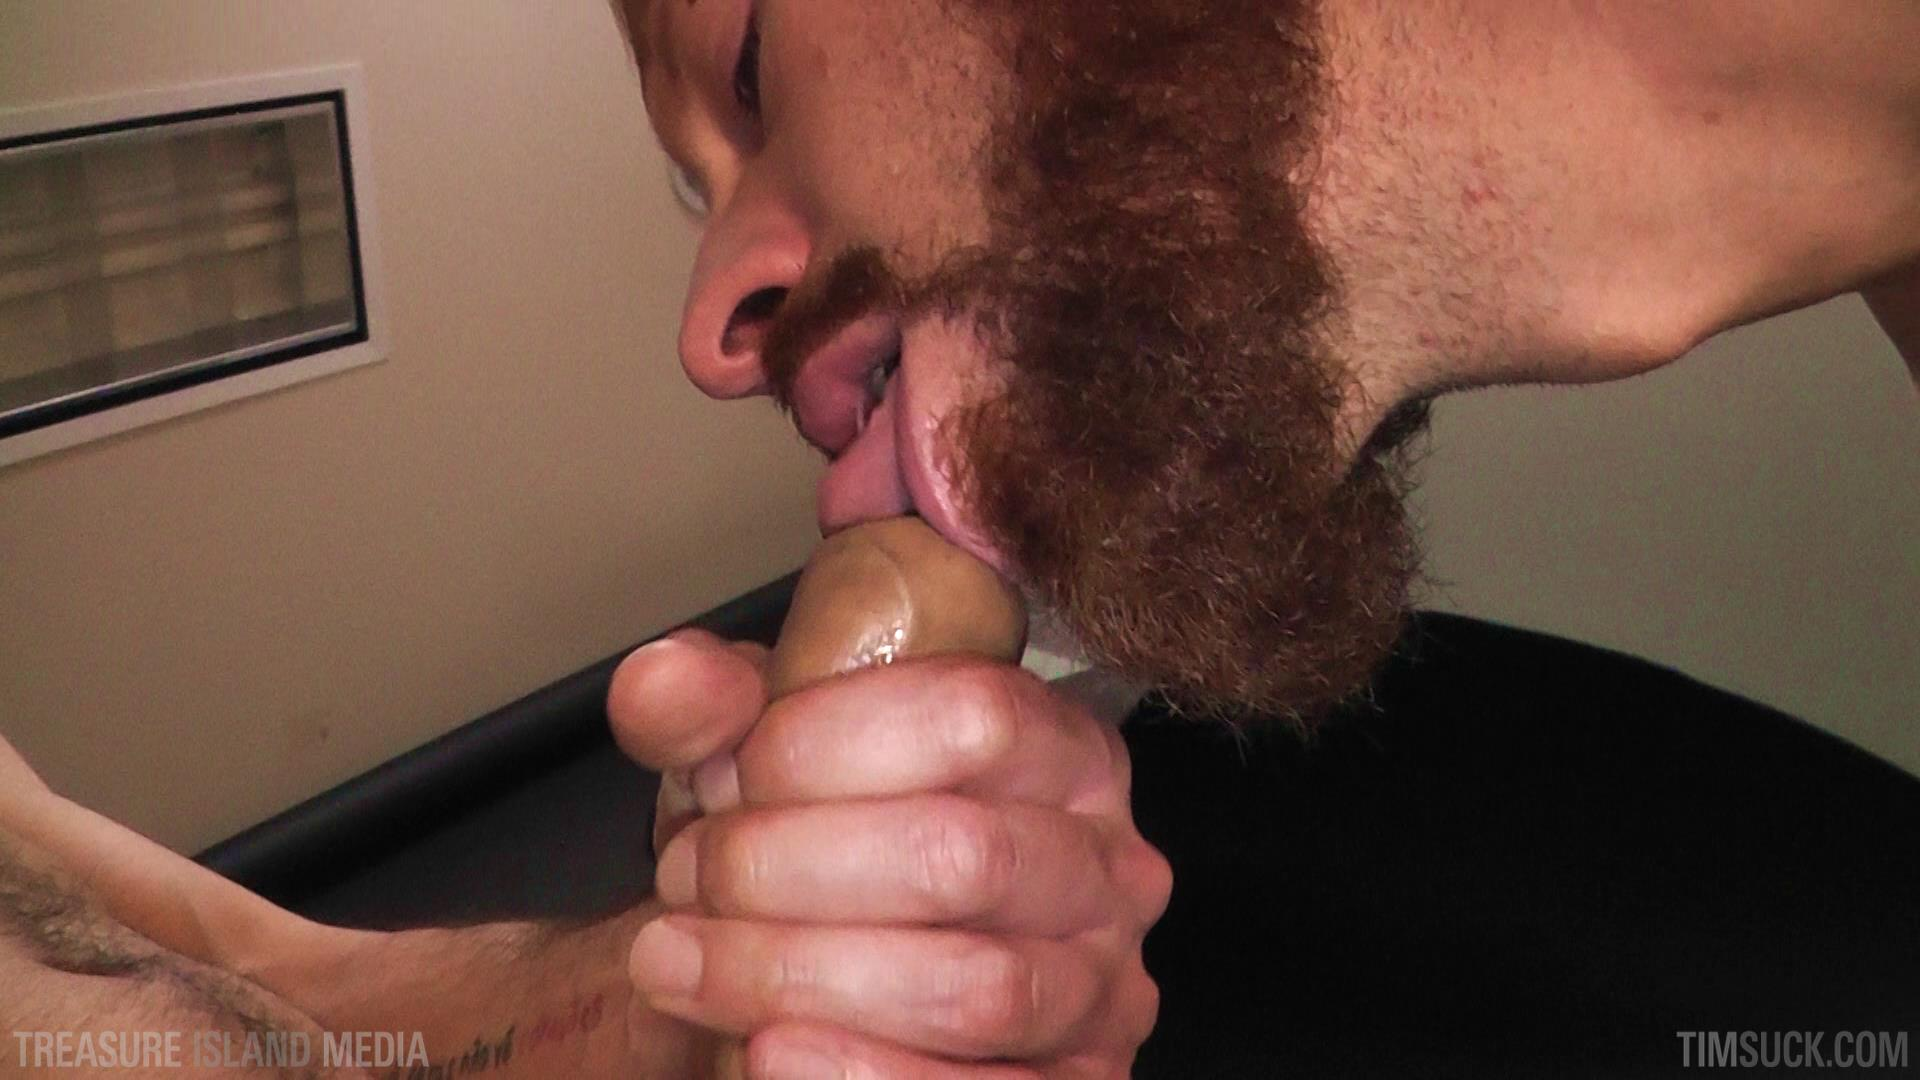 Treasure Island Media TimSuck Pete Summers and Dean Brody Sucking A Big Uncut Cock Amateur Gay Porn 43 Bearded Ginger Services A Big Uncut Cock And Eats The Cum